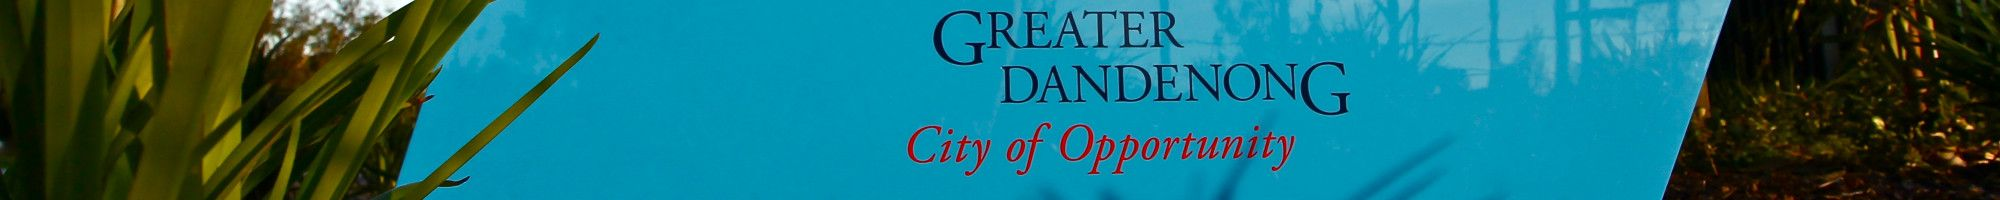 City of Greater Dandenong Logo on blue panel